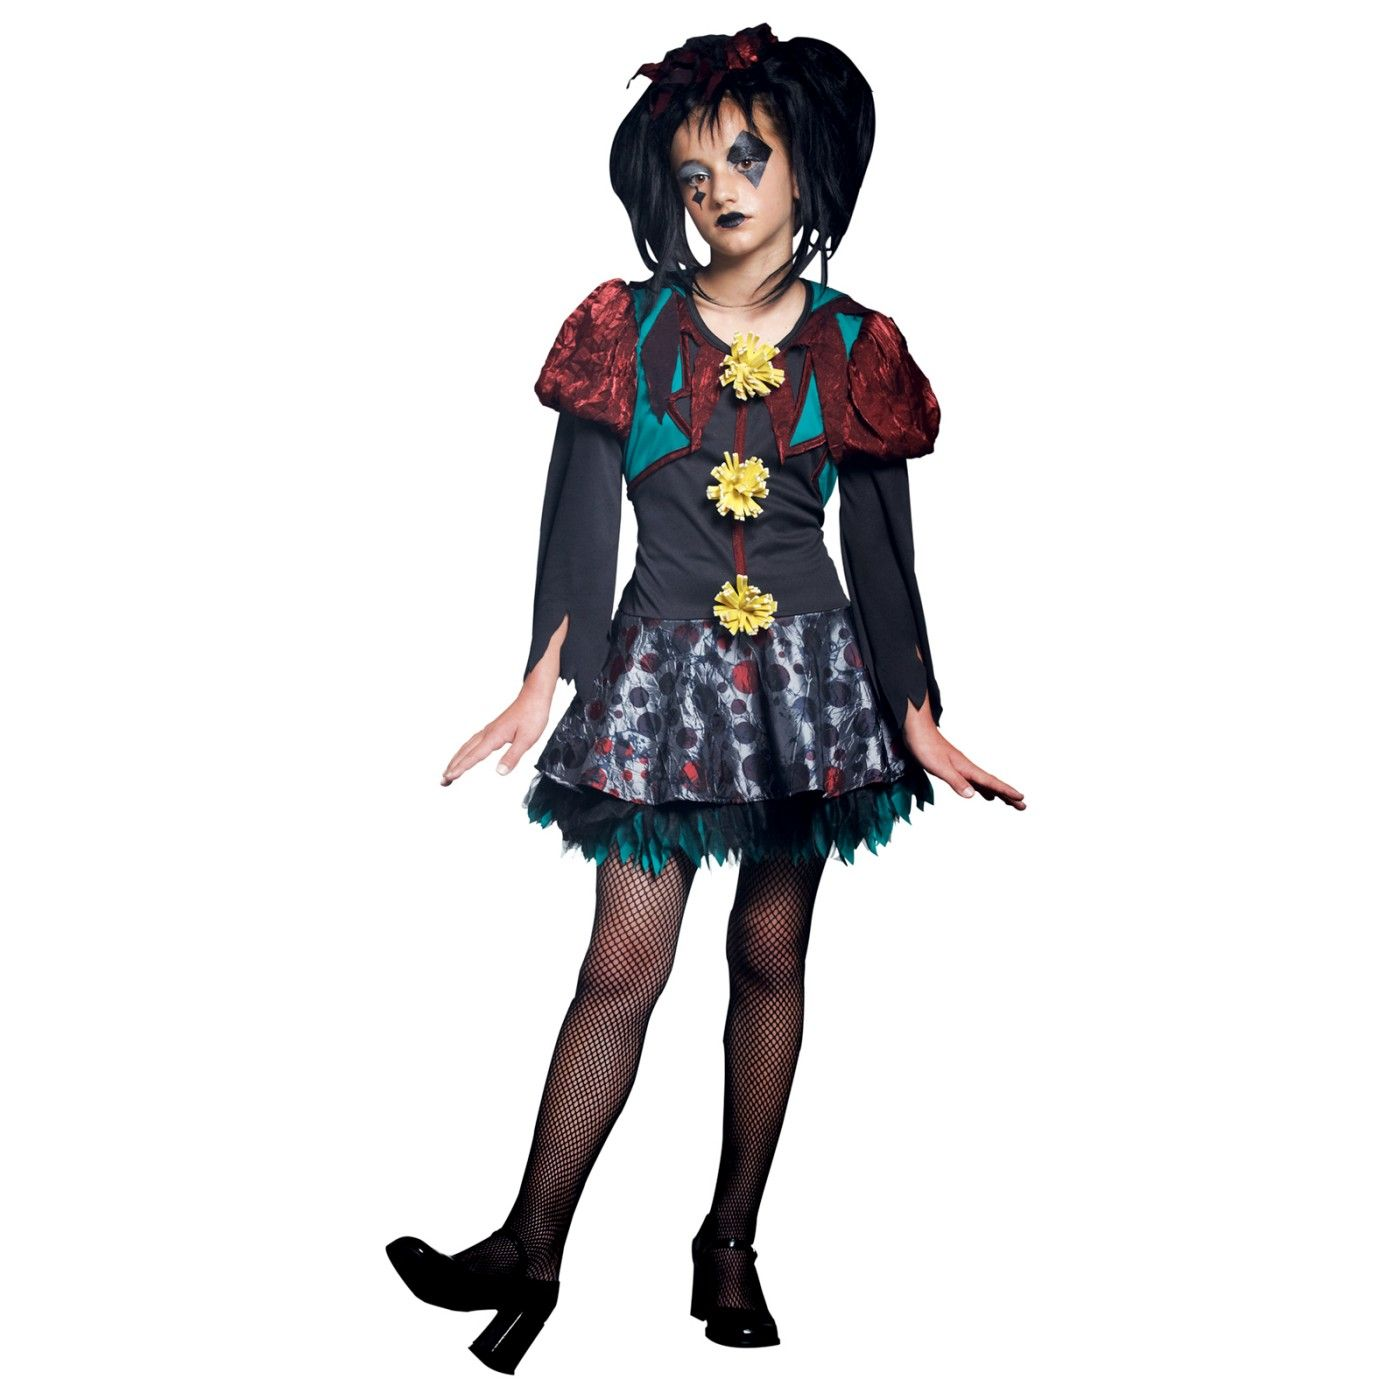 Gothic Scary Merry Girl Costume | Kids Costumes | Pinterest ...